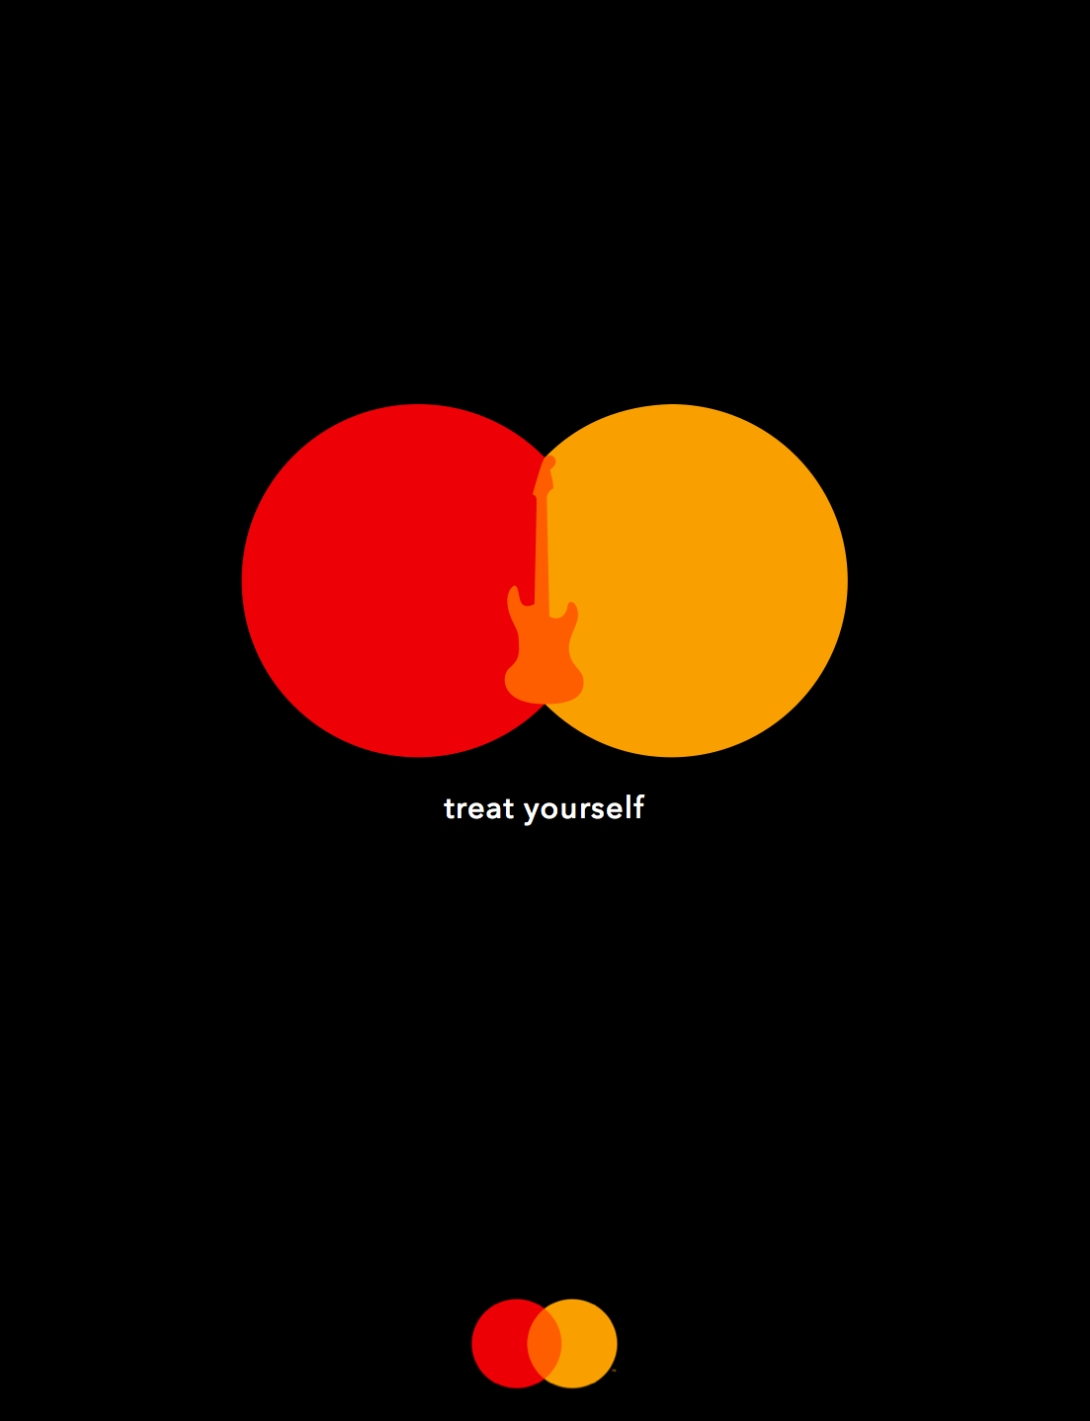 advertising idea for mastercard - treat yourself - guitar